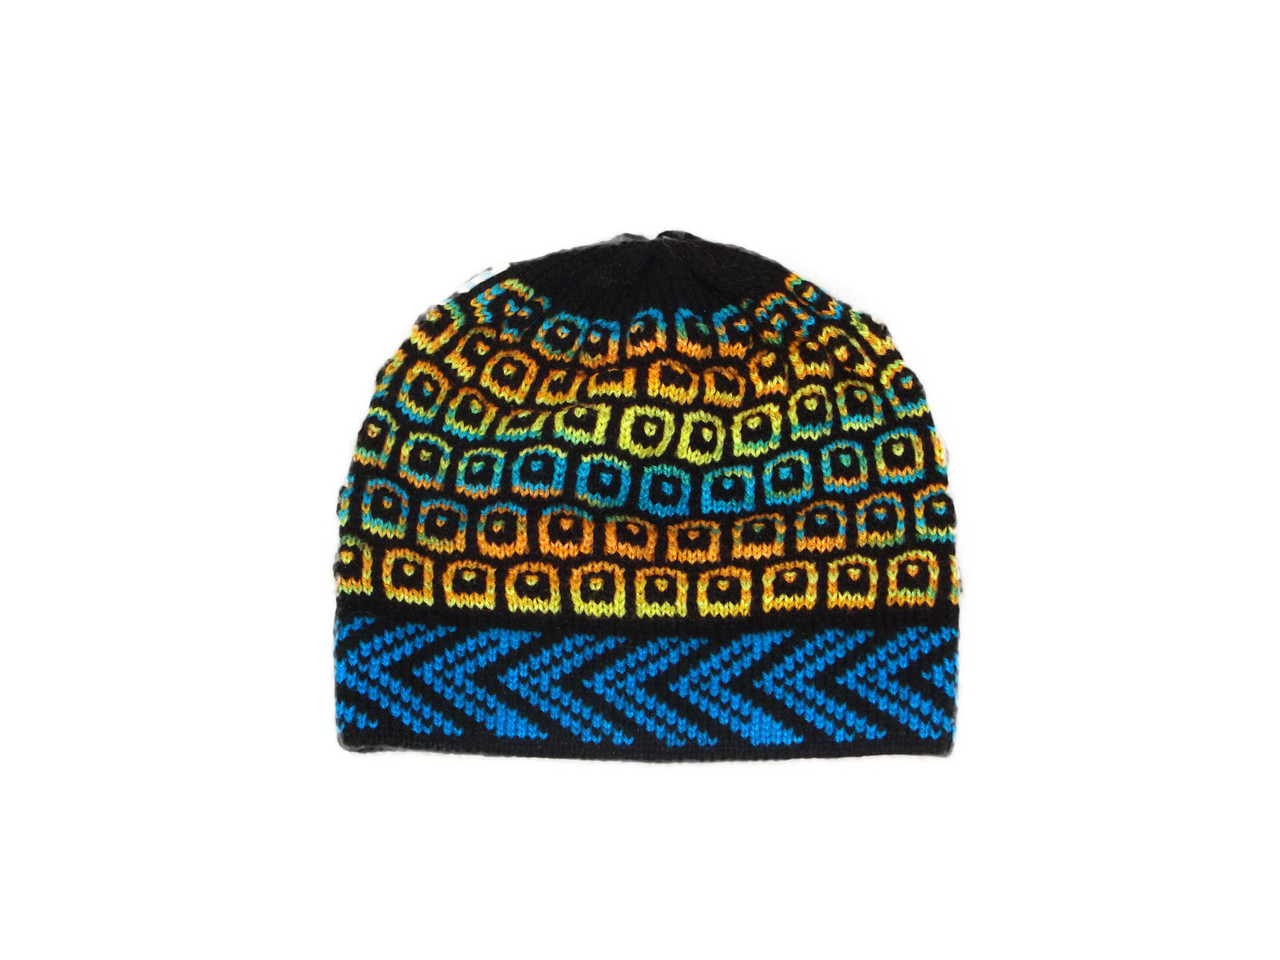 f3934482ef8 Beanie Alpaca Knit Squares and Dots Multicolored Adult Size Peru - Sanyork  Fair Trade